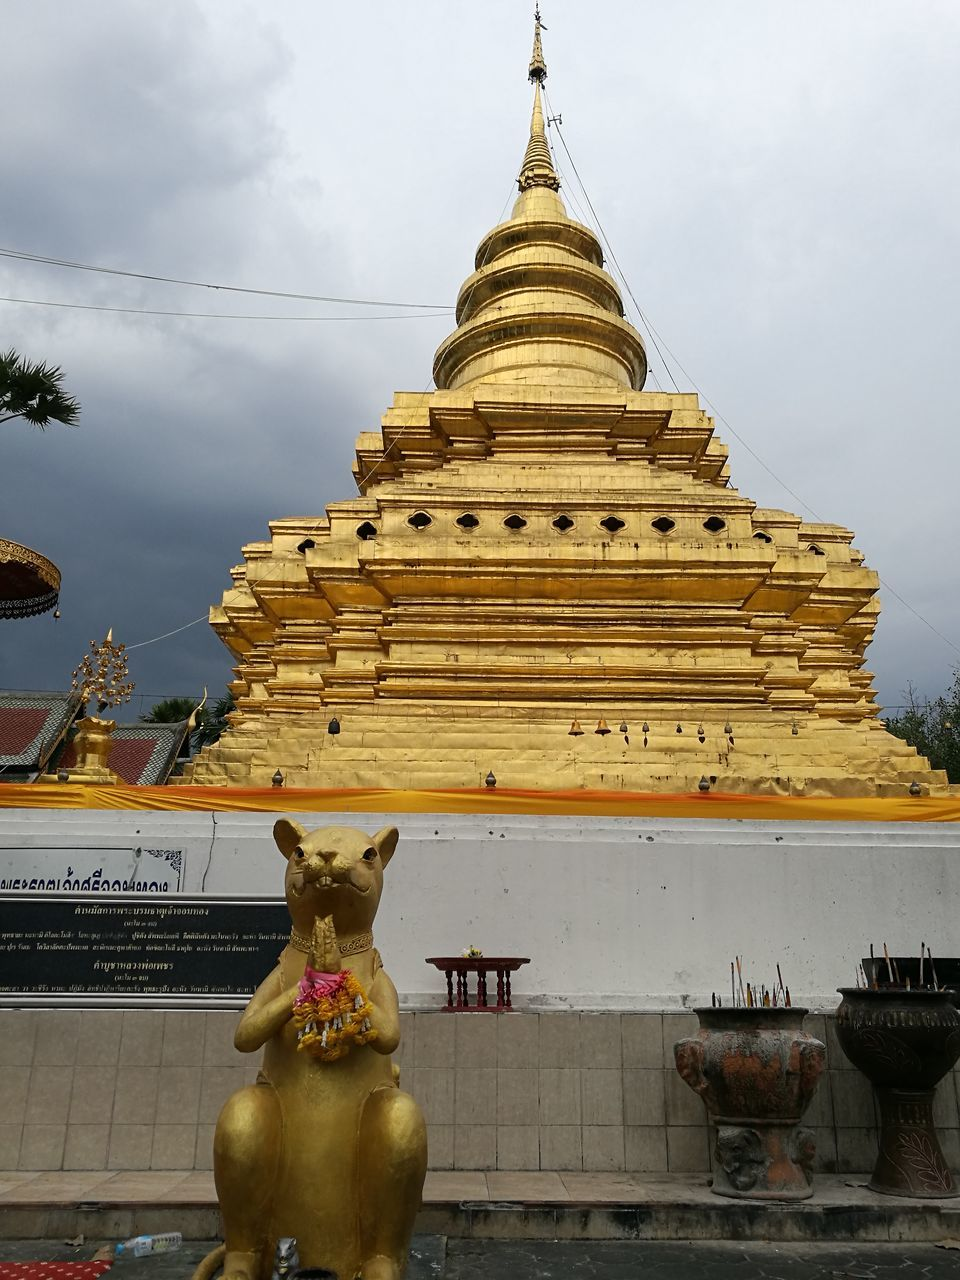 religion, spirituality, statue, architecture, place of worship, built structure, building exterior, sculpture, gold colored, pagoda, human representation, sky, history, ancient, travel destinations, outdoors, low angle view, no people, day, gold